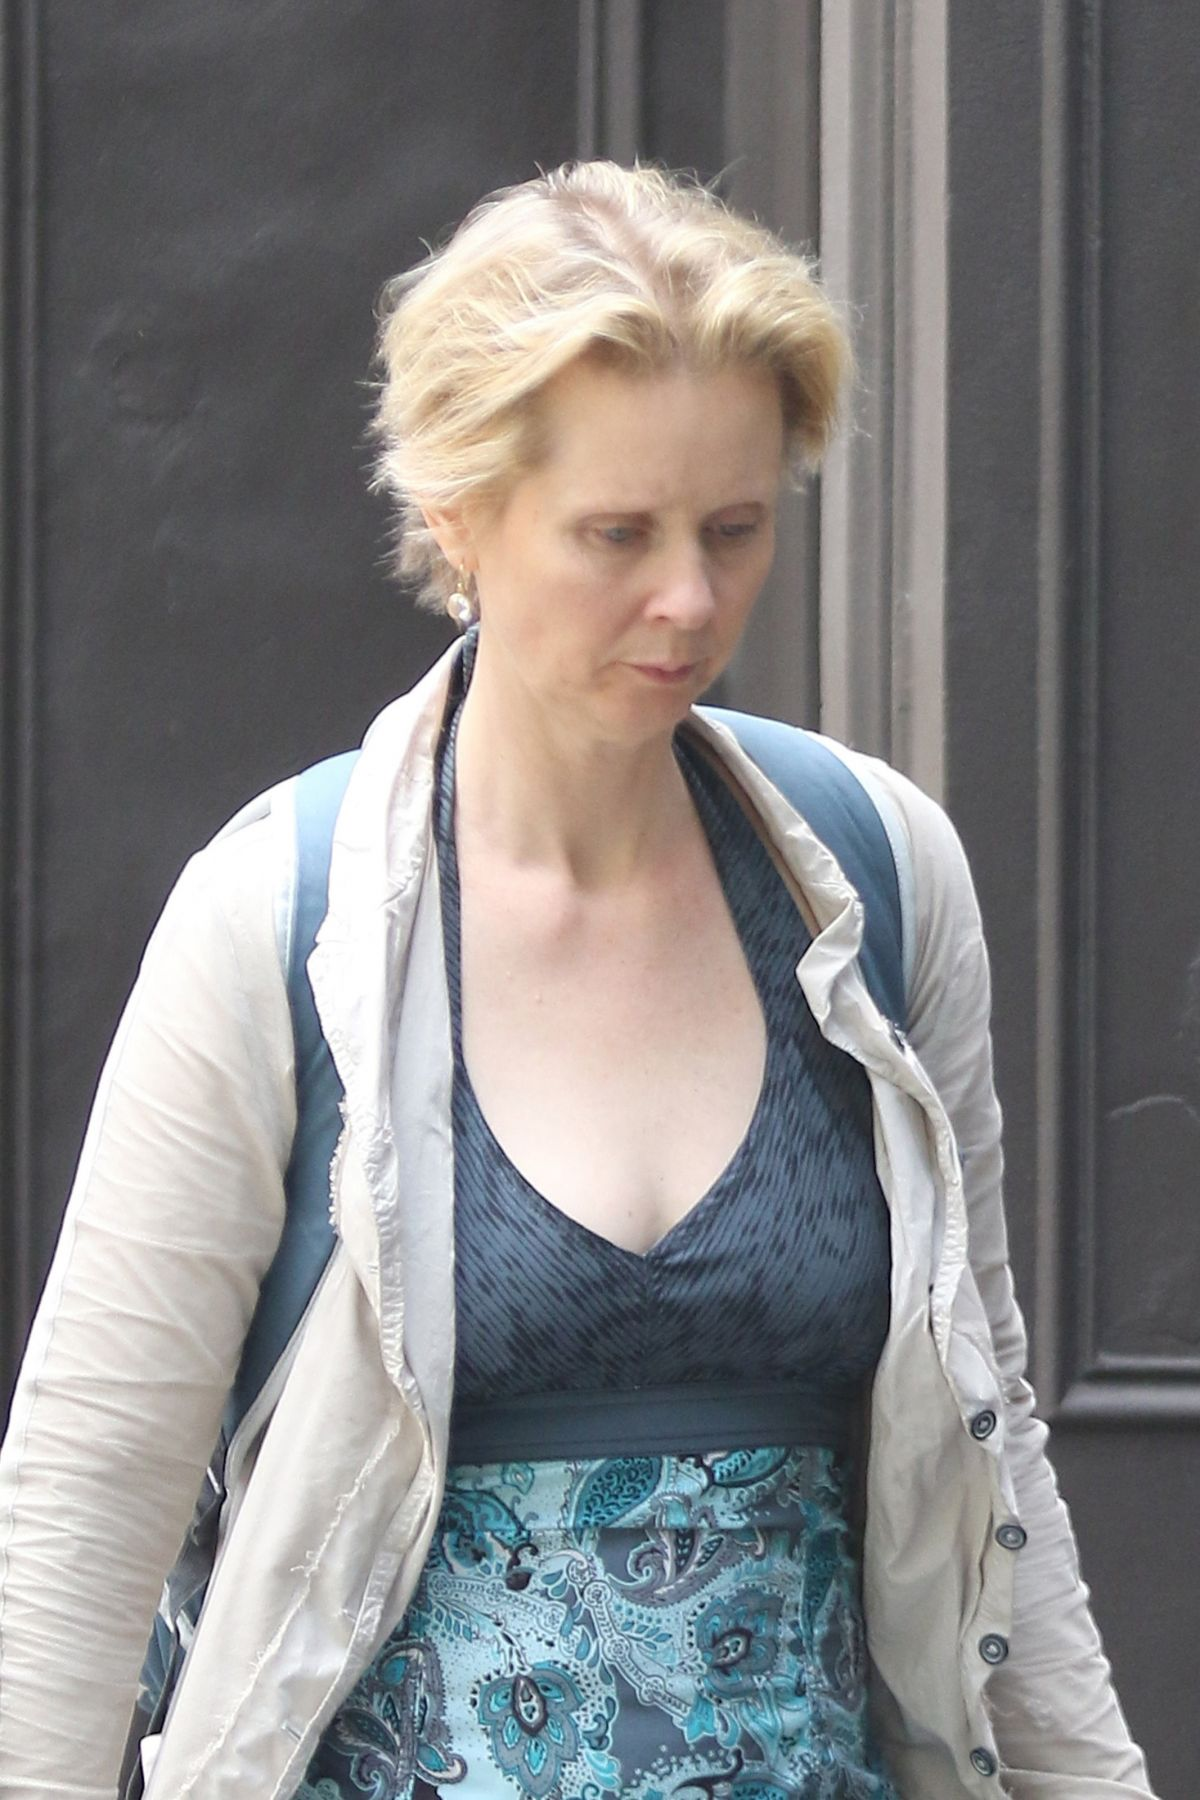 cynthia nixon - photo #45